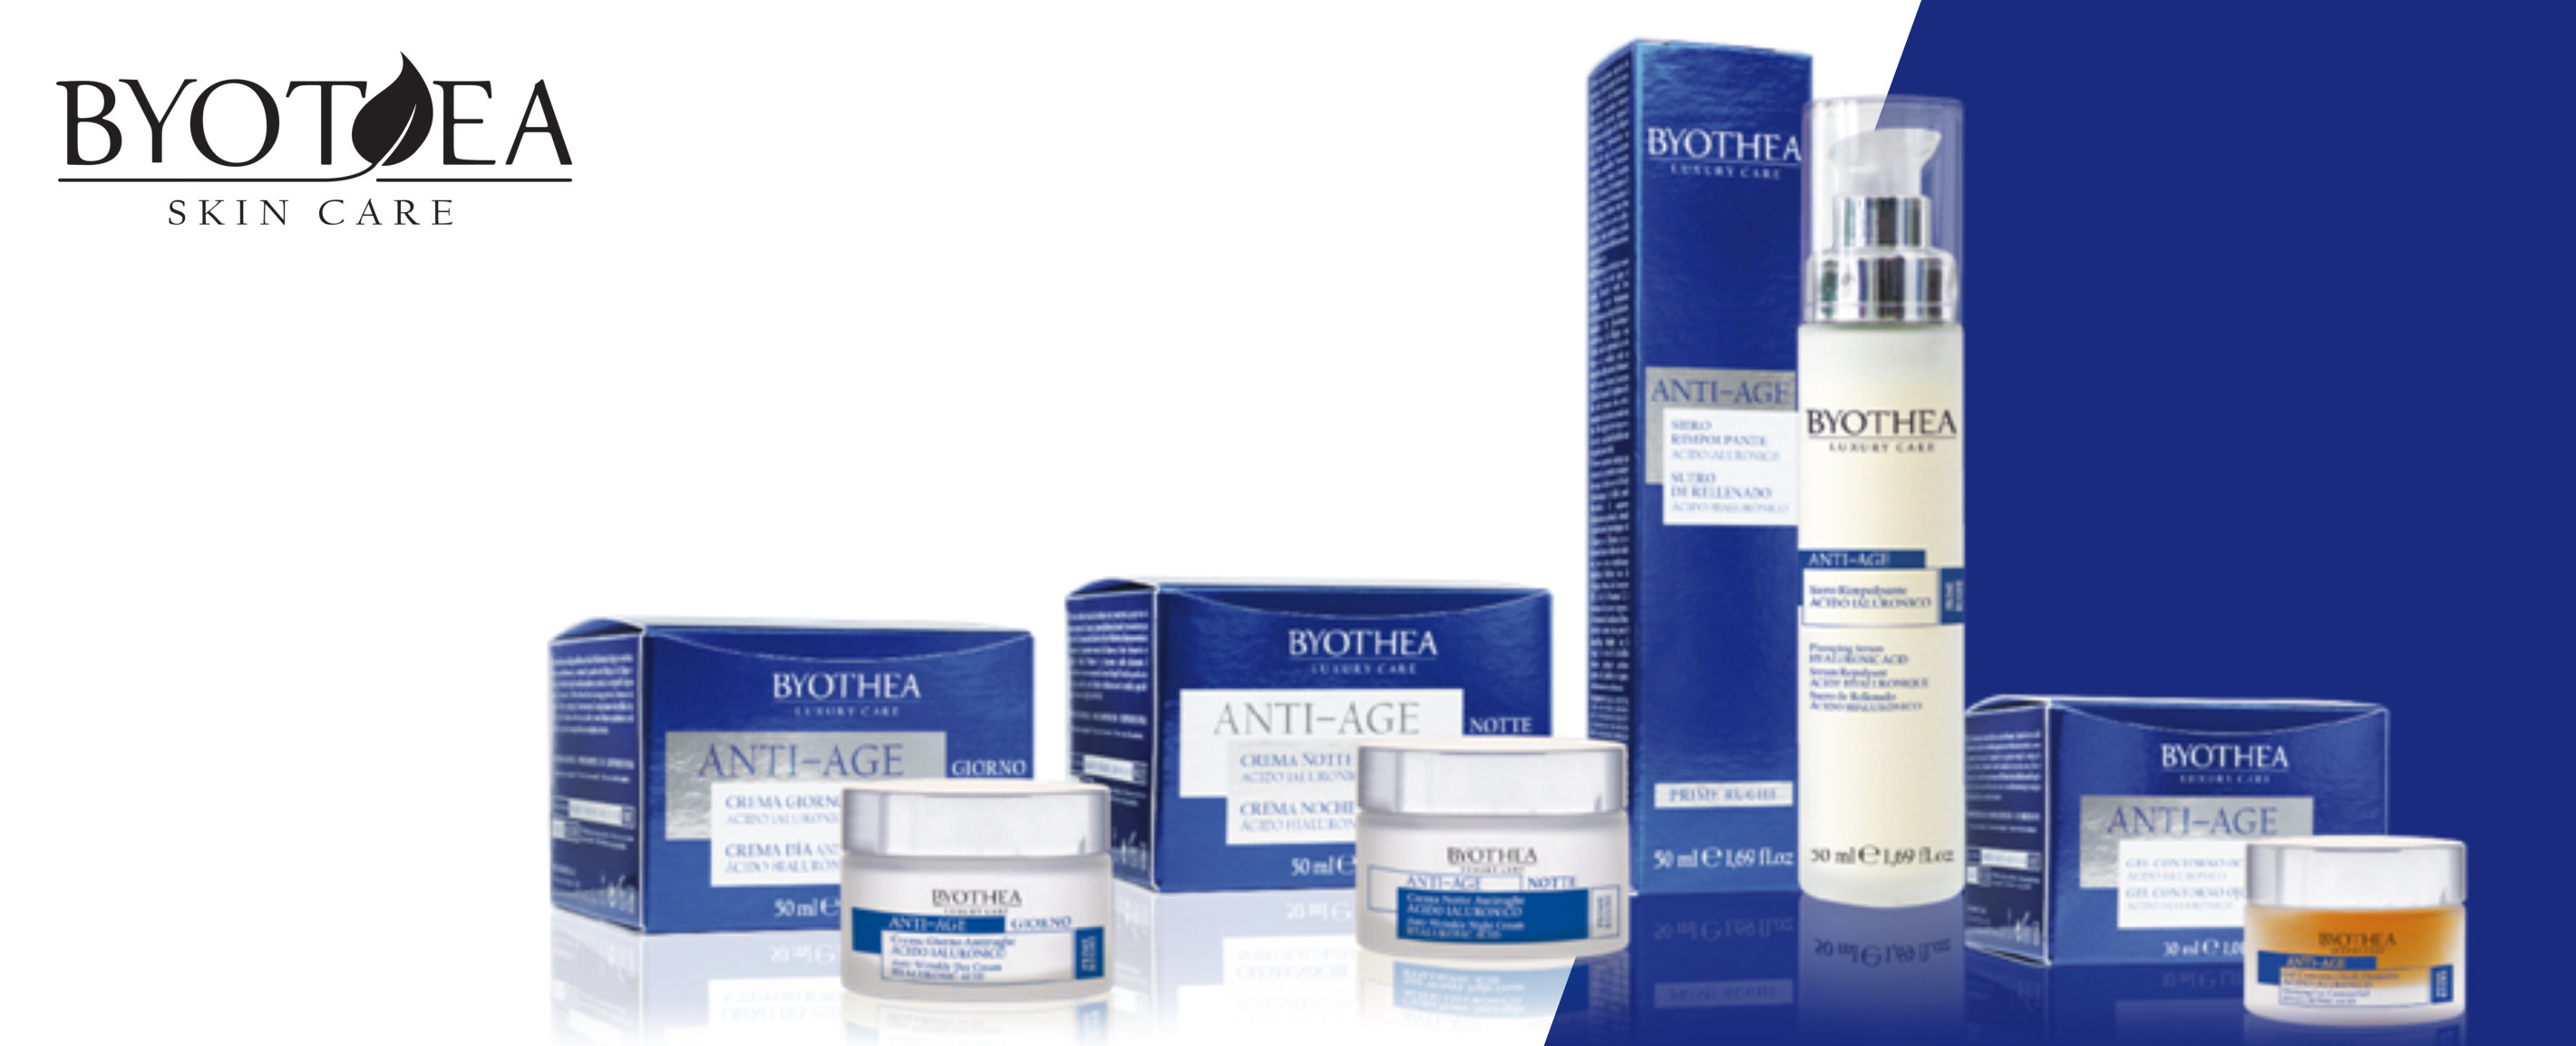 Byotea Anti-Age Early Wrinkles